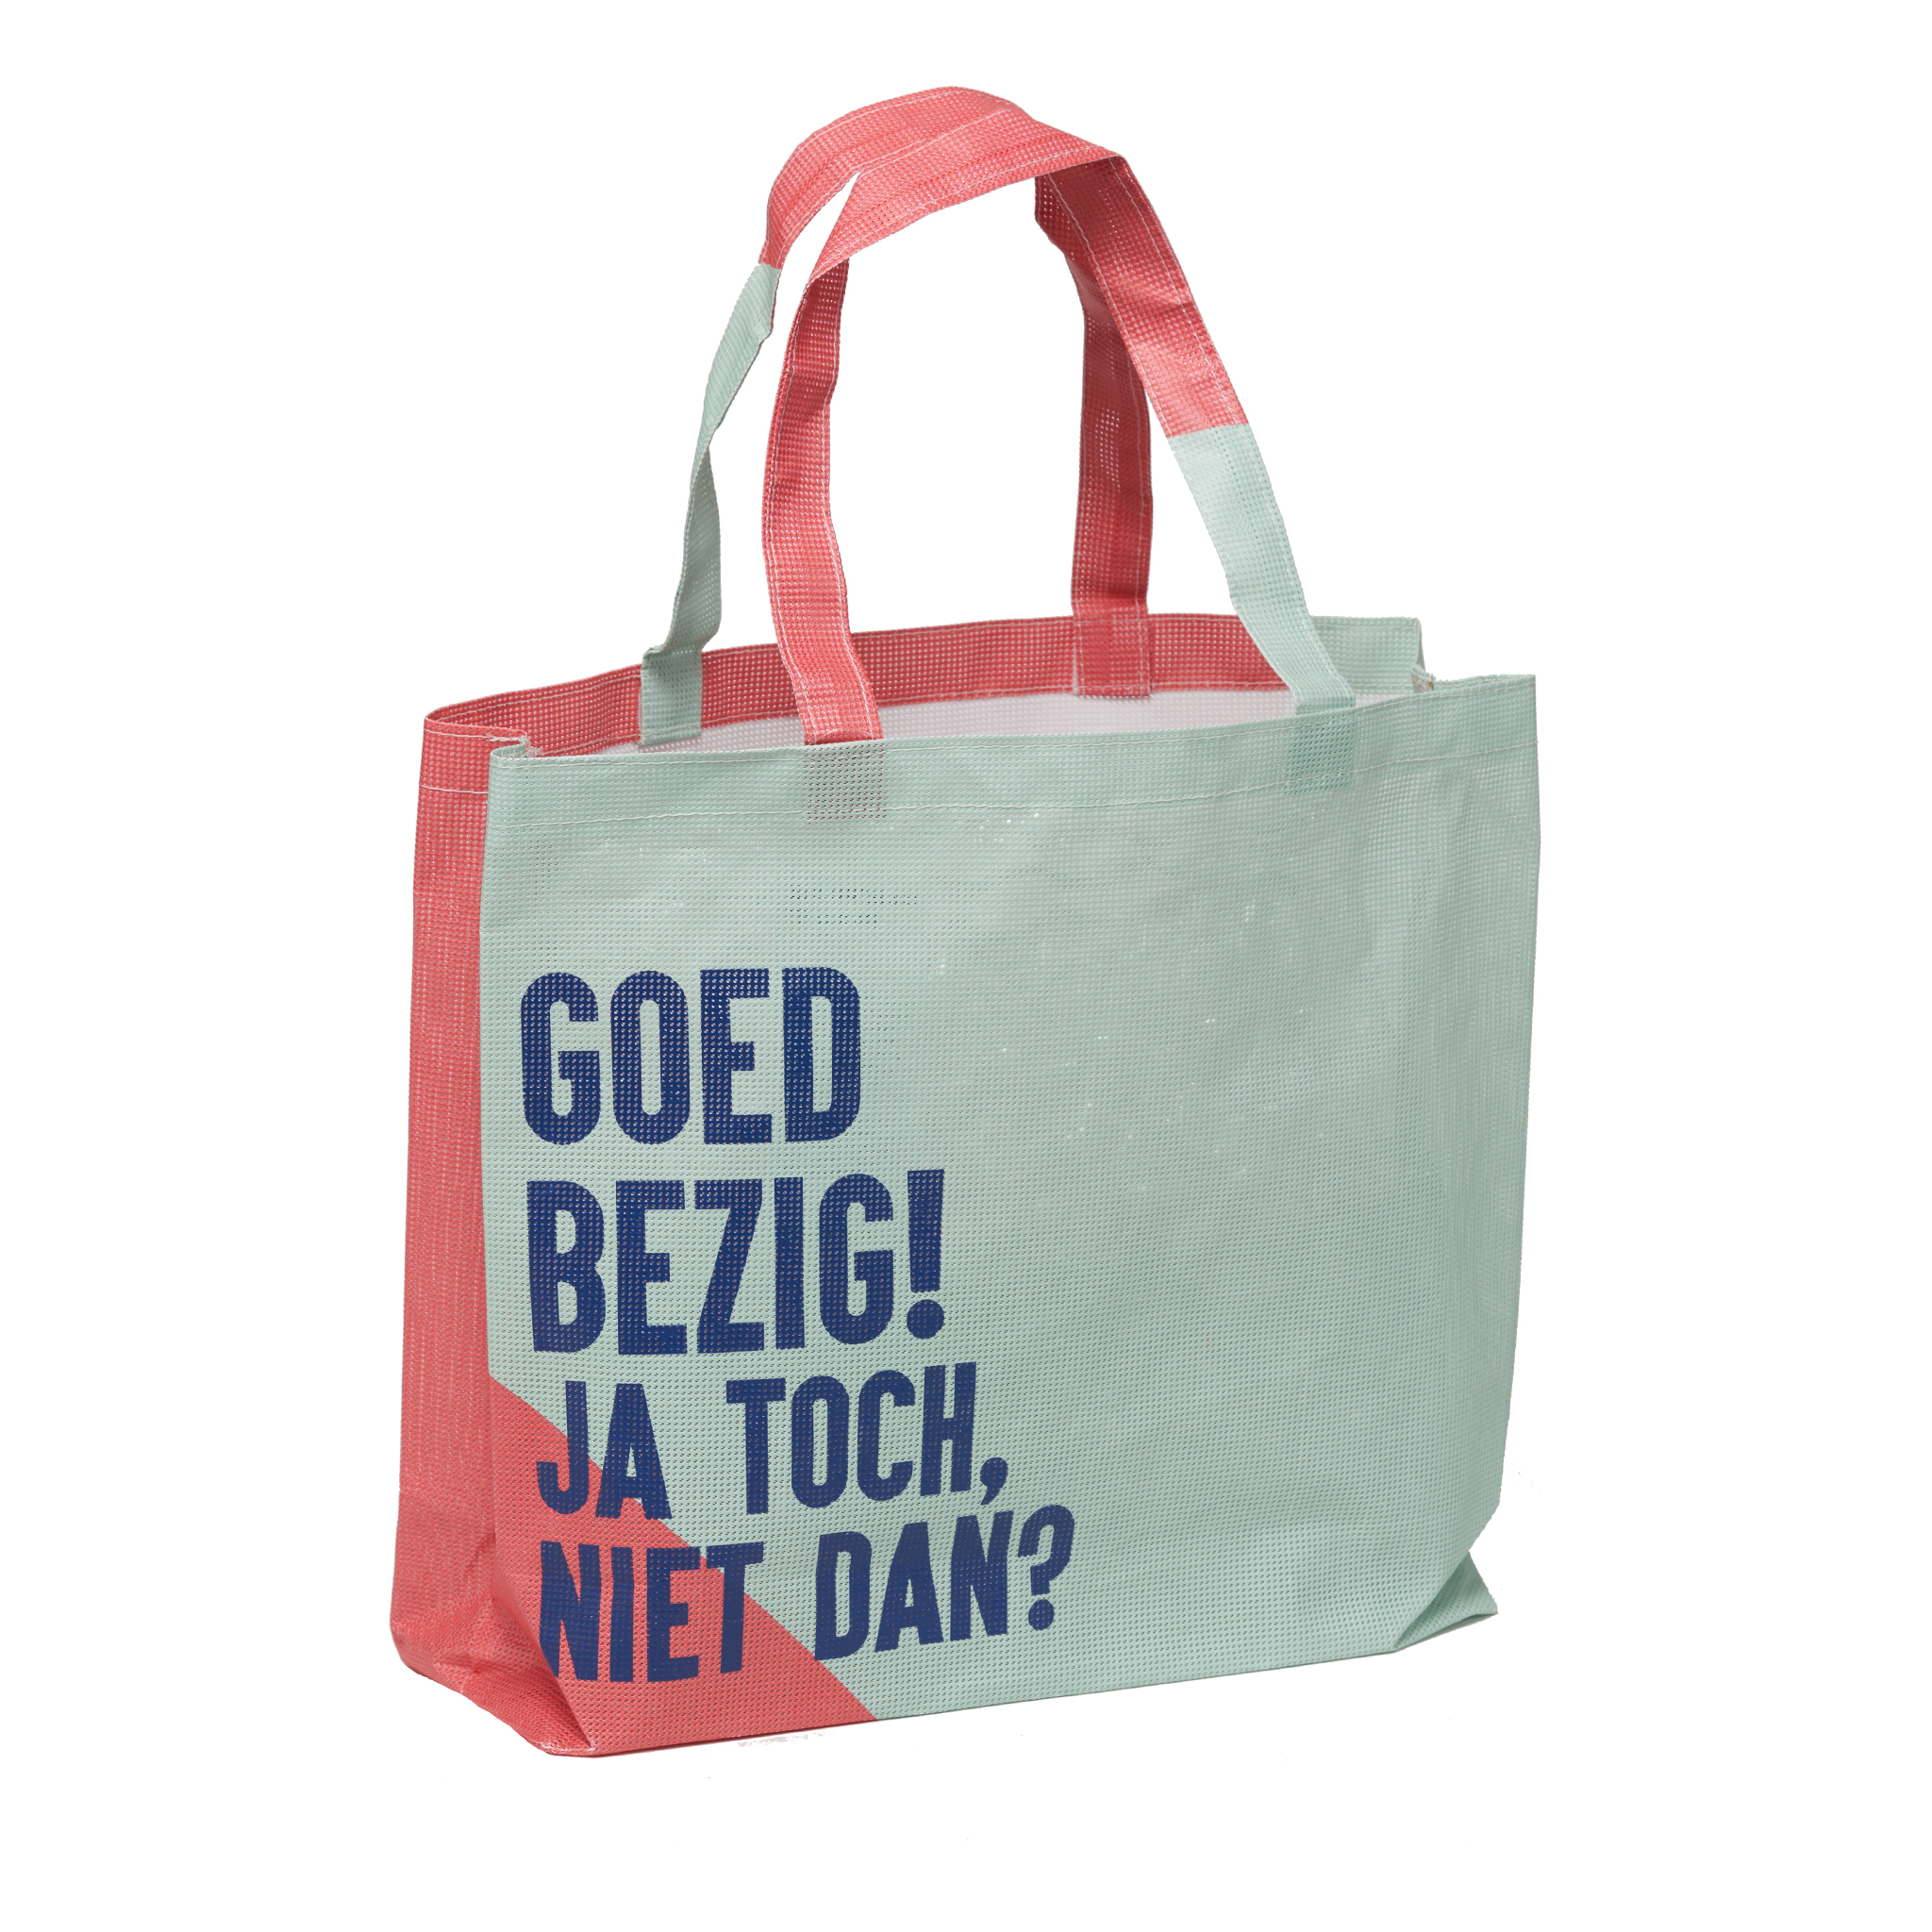 BEAT THE BAG: LET'S BEAT THE BAG   Beat the Bag reduces the use of plastic bags and gives promotional banners a second life. By upcycling these waste materials from and for companies into reusable bags, we support the circular economy in the Netherlands. In social workplaces, these sustainable and high-quality bags are sewn with lots of love.  100% sustainable, 100% social and 100% local.   http://beatthebag.com/